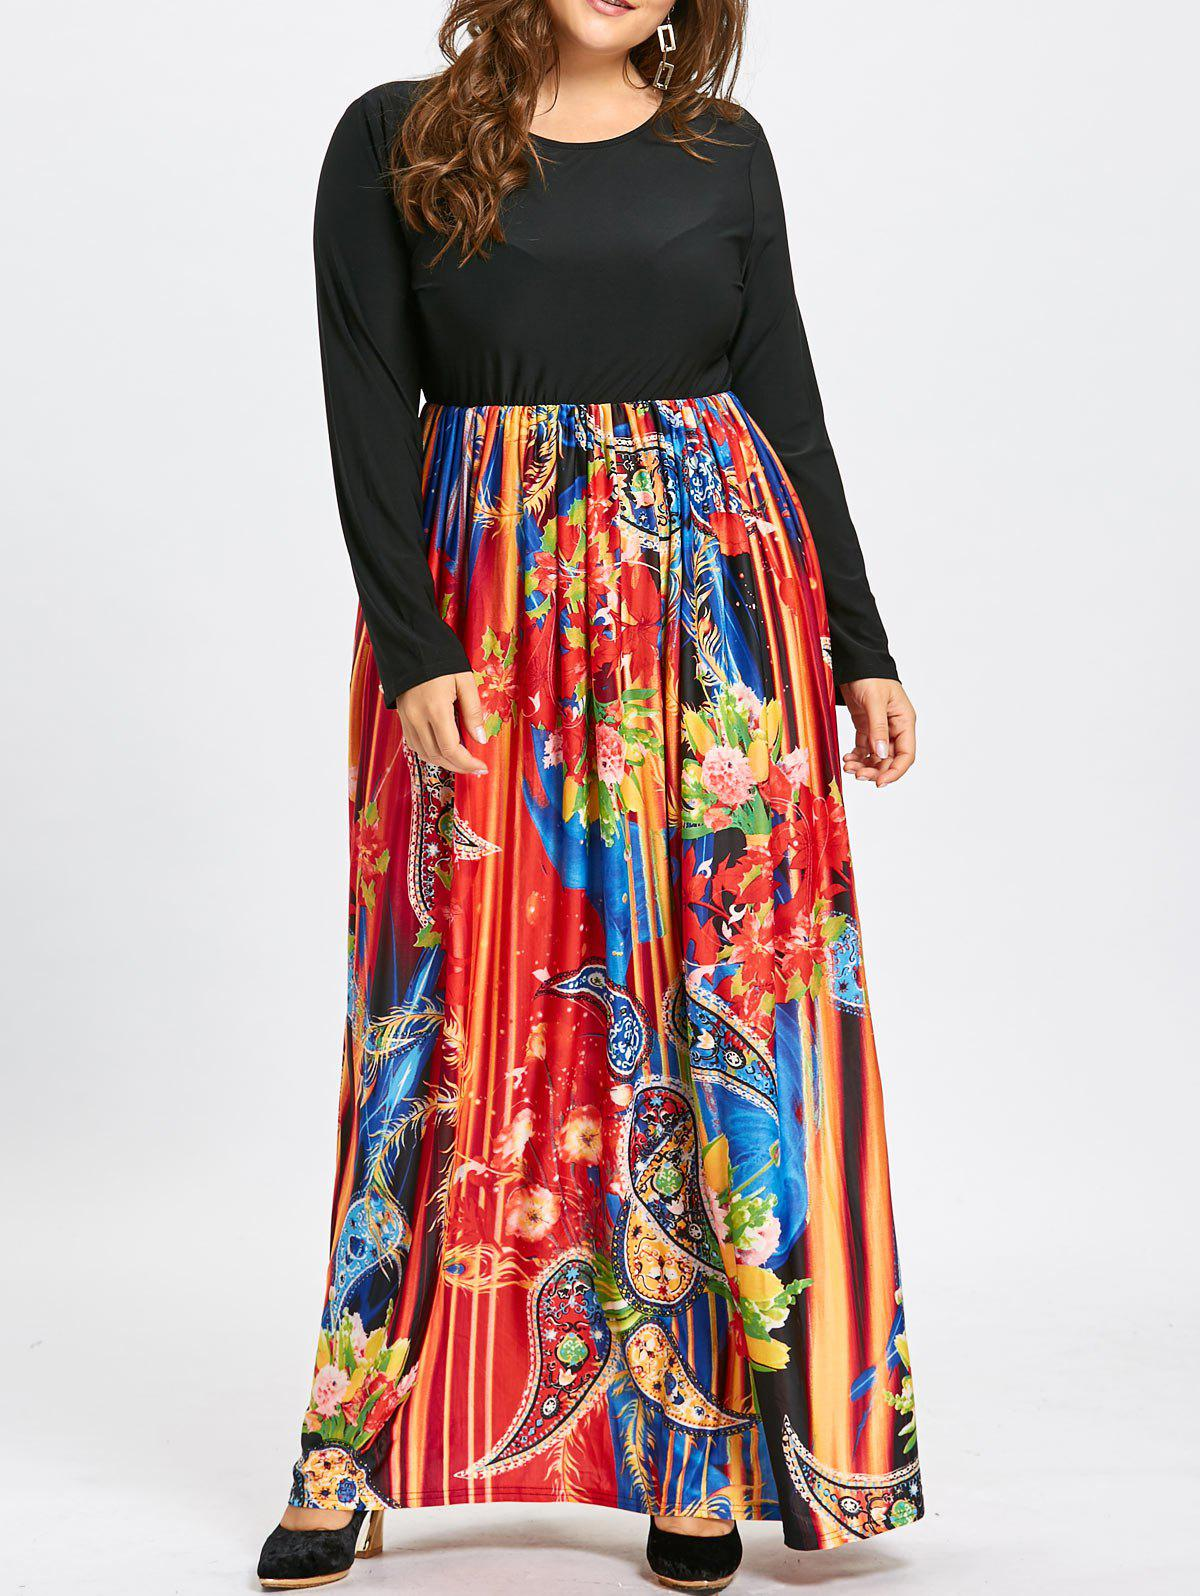 paisley print plus size long sleeve maxi dress, black, xl in plus